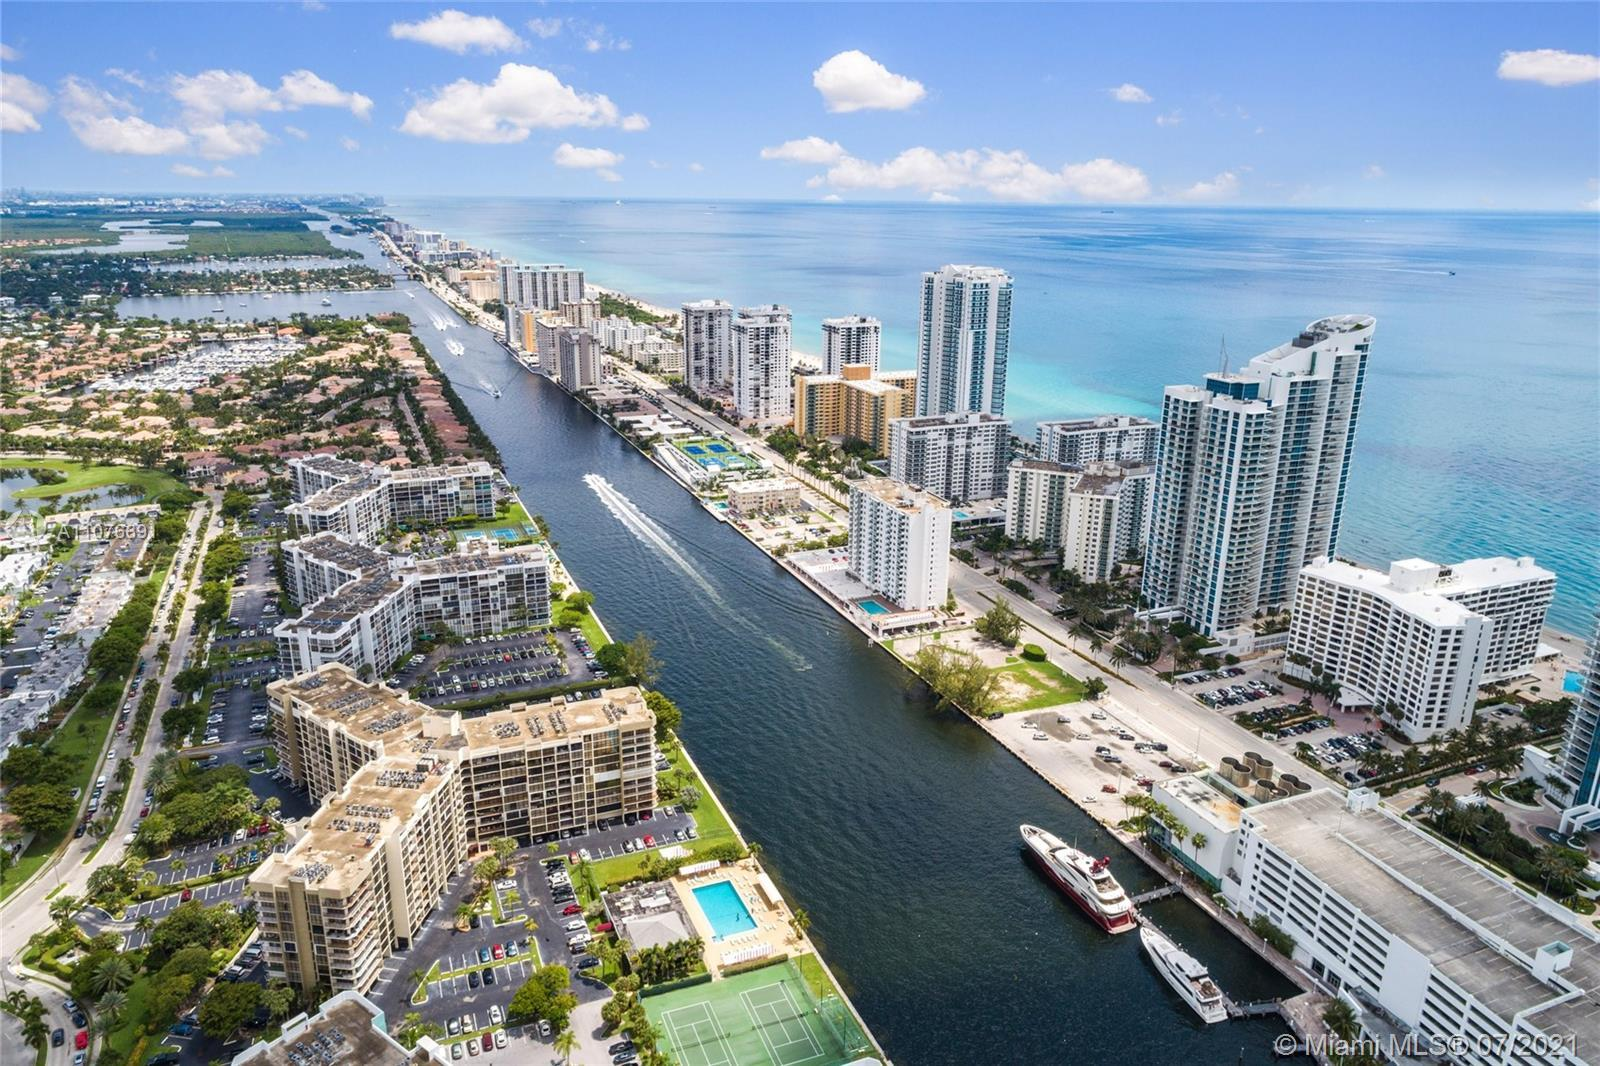 Turn key 1 bedroom, 1 1/2 bath waterfront condo with gorgeous water views from your open balcony. Fr